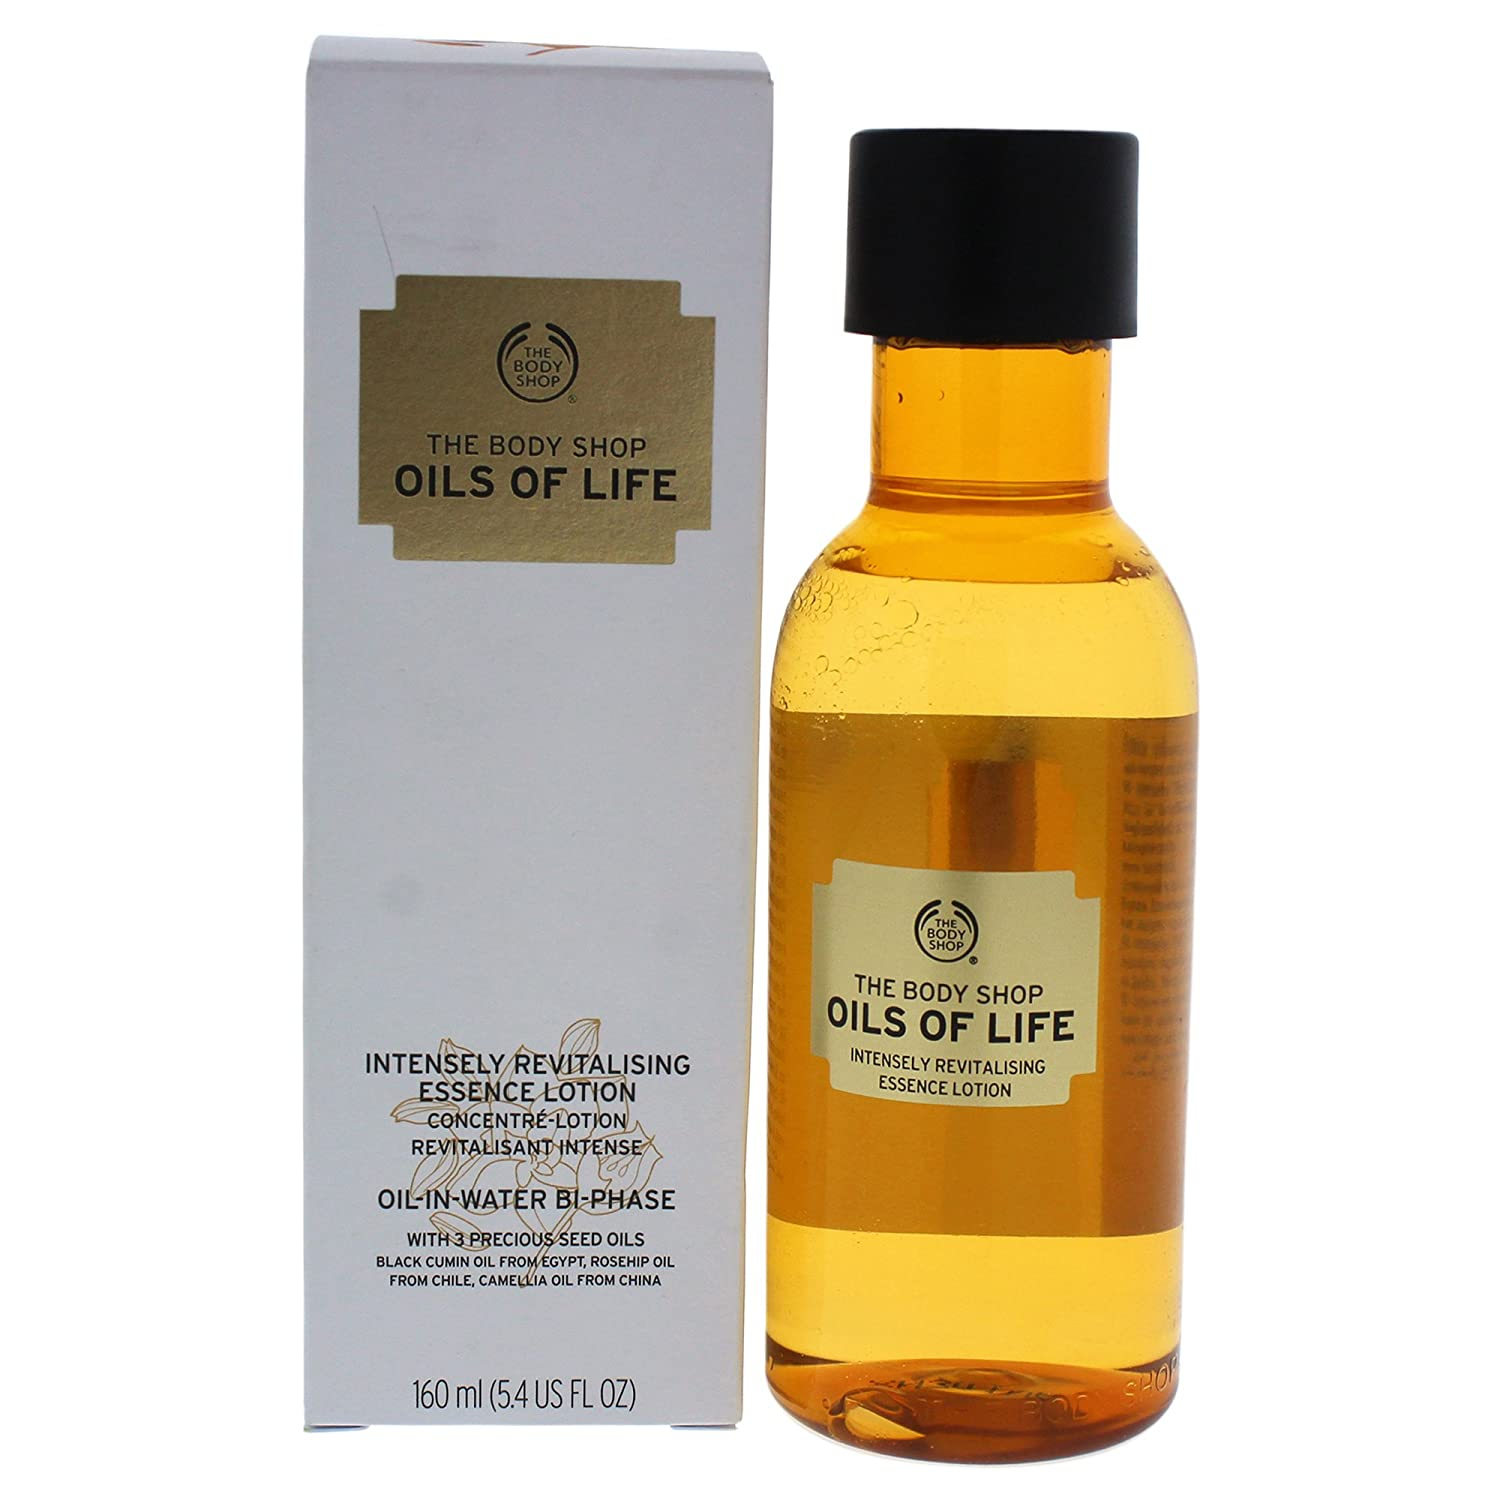 The Body Shop Oils of Life Intensely Revitalising Essence Lotion, 100% Vegan, 160ML The Body Shop Canada 5028197415884